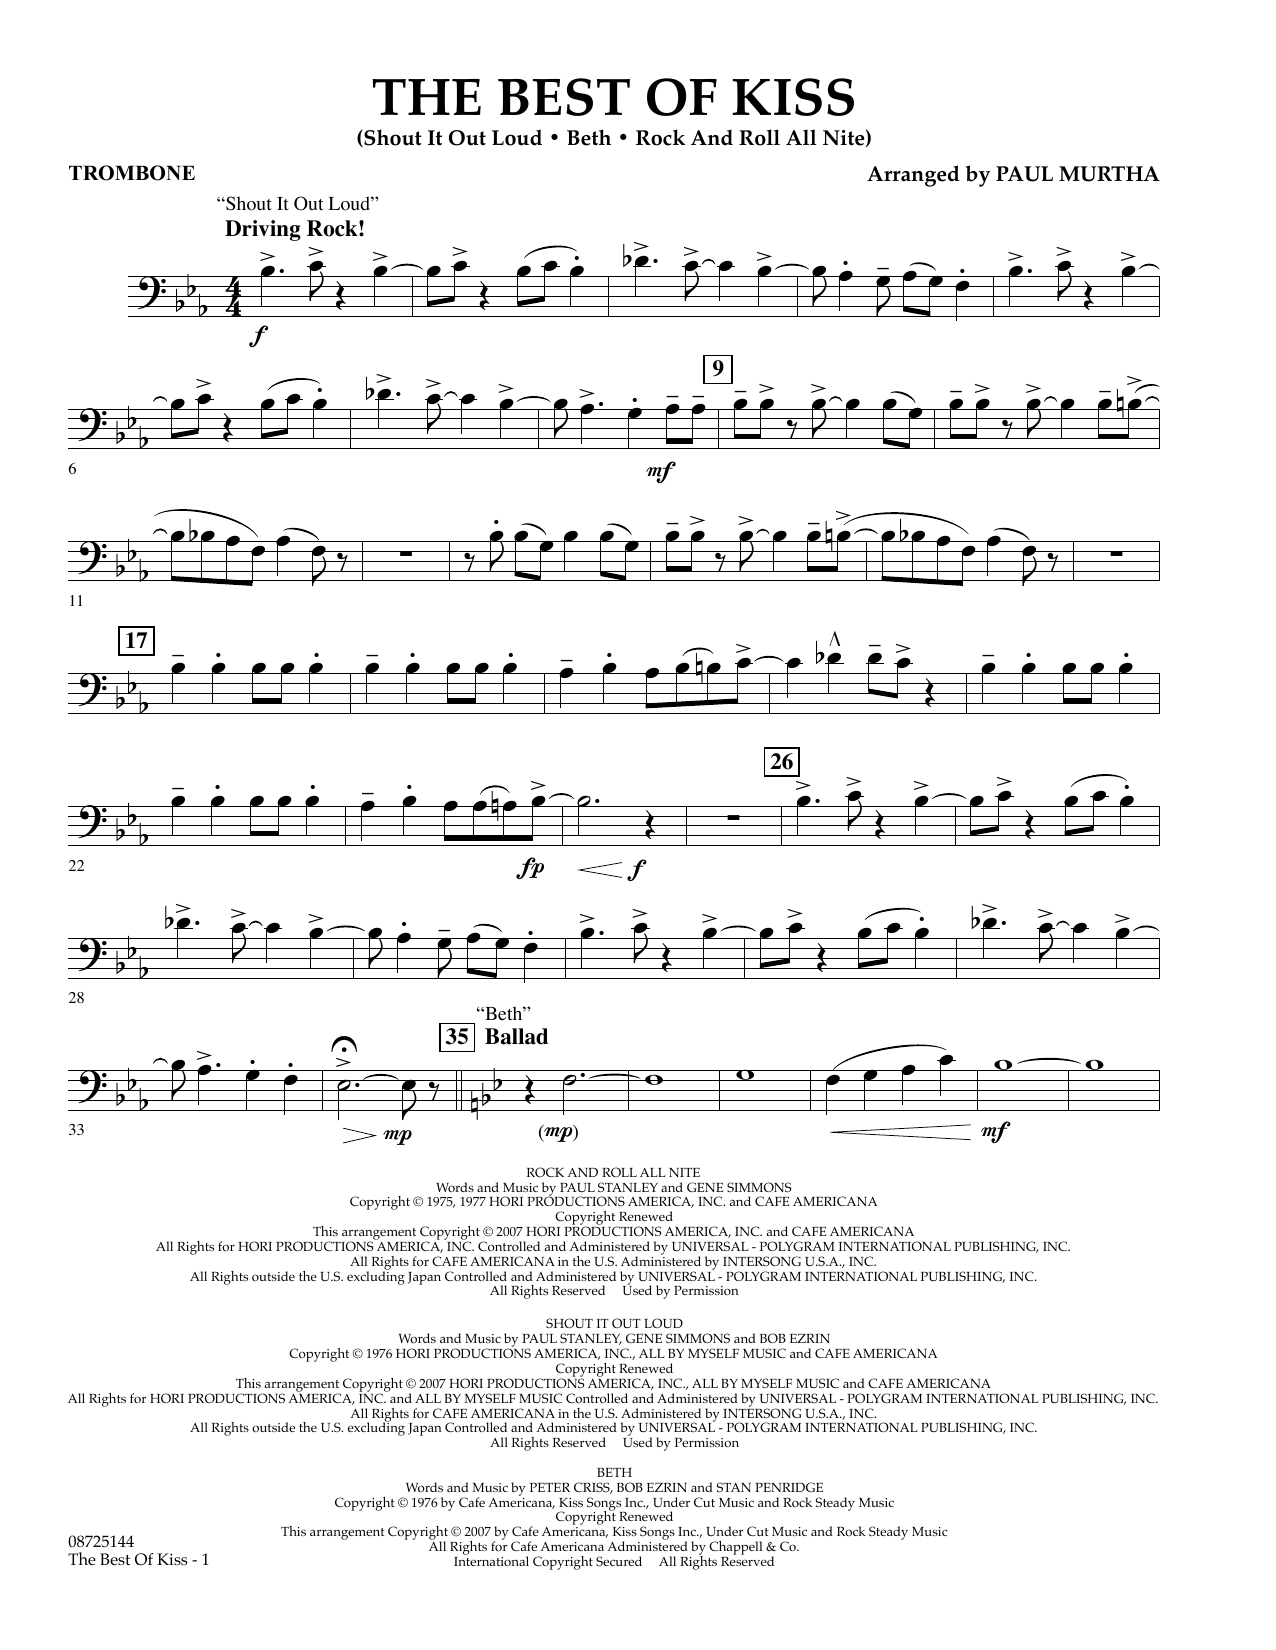 Paul Murtha The Best of Kiss - Trombone sheet music preview music notes and score for Concert Band including 2 page(s)